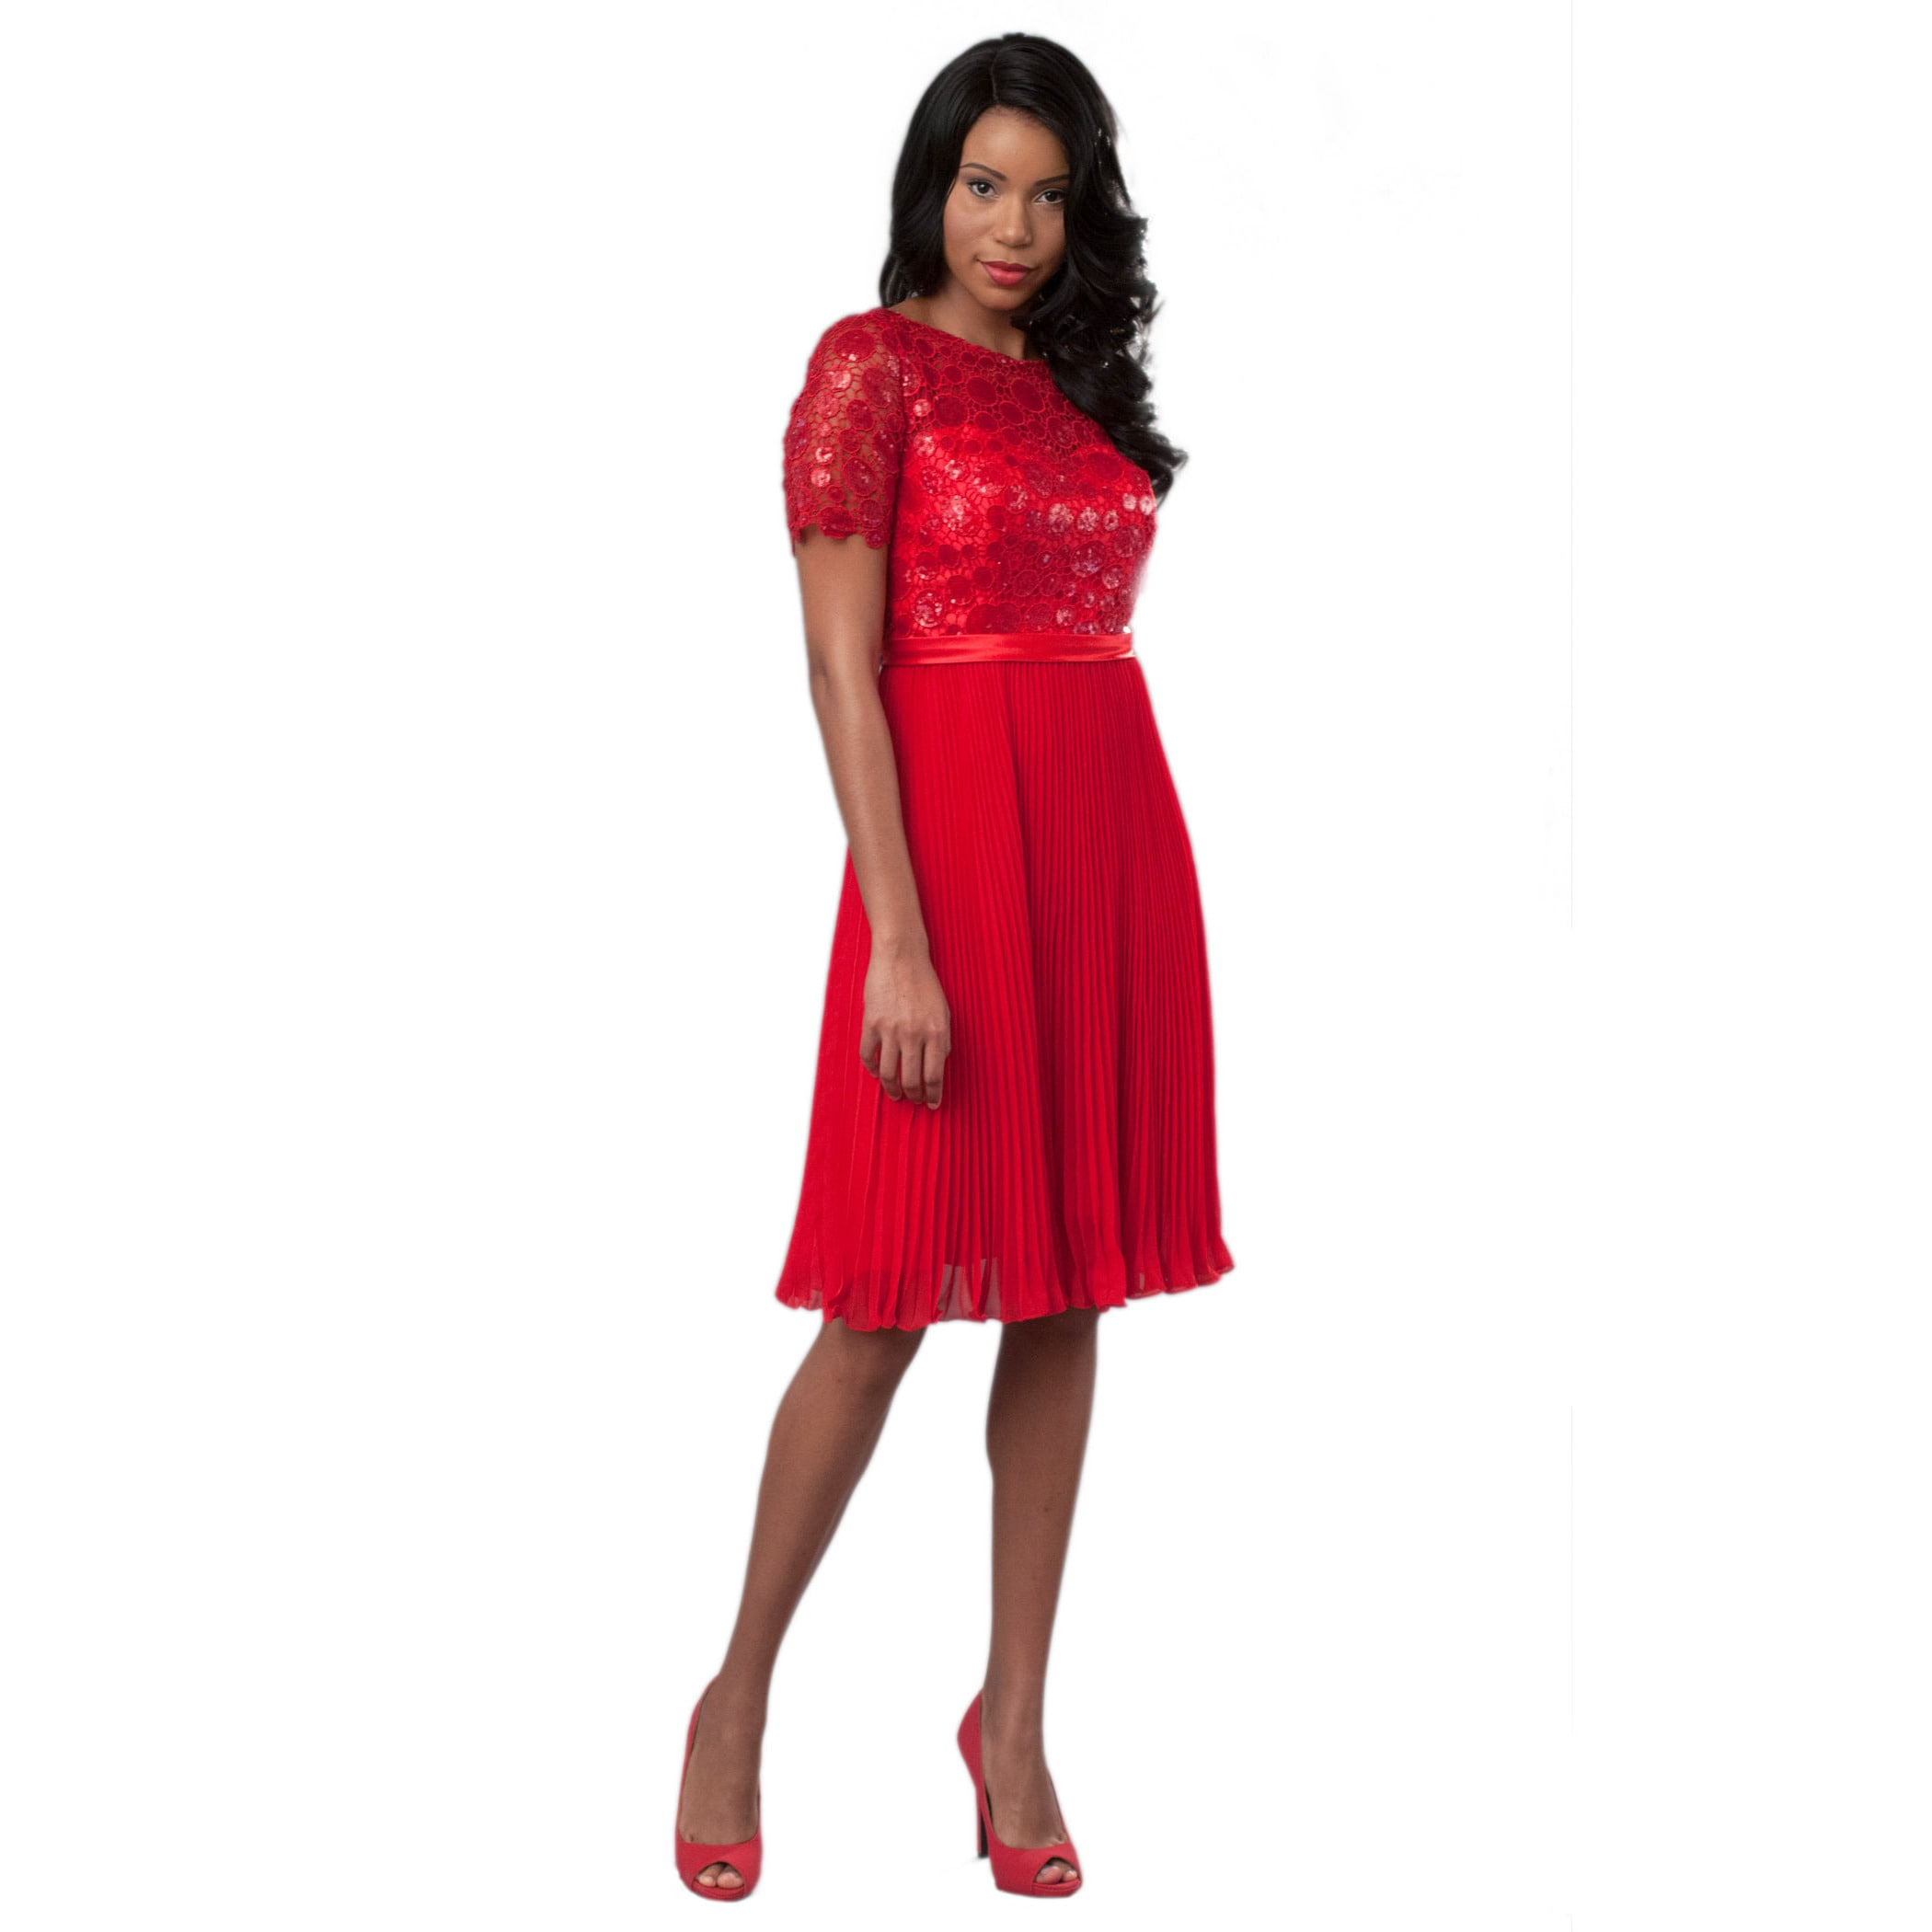 7e26151a57 Shop Robin DS Women s Plus Shiny Sequinned top Cocktail Dress with Pleated  Chiffon Skirt - Free Shipping Today - Overstock - 11332764